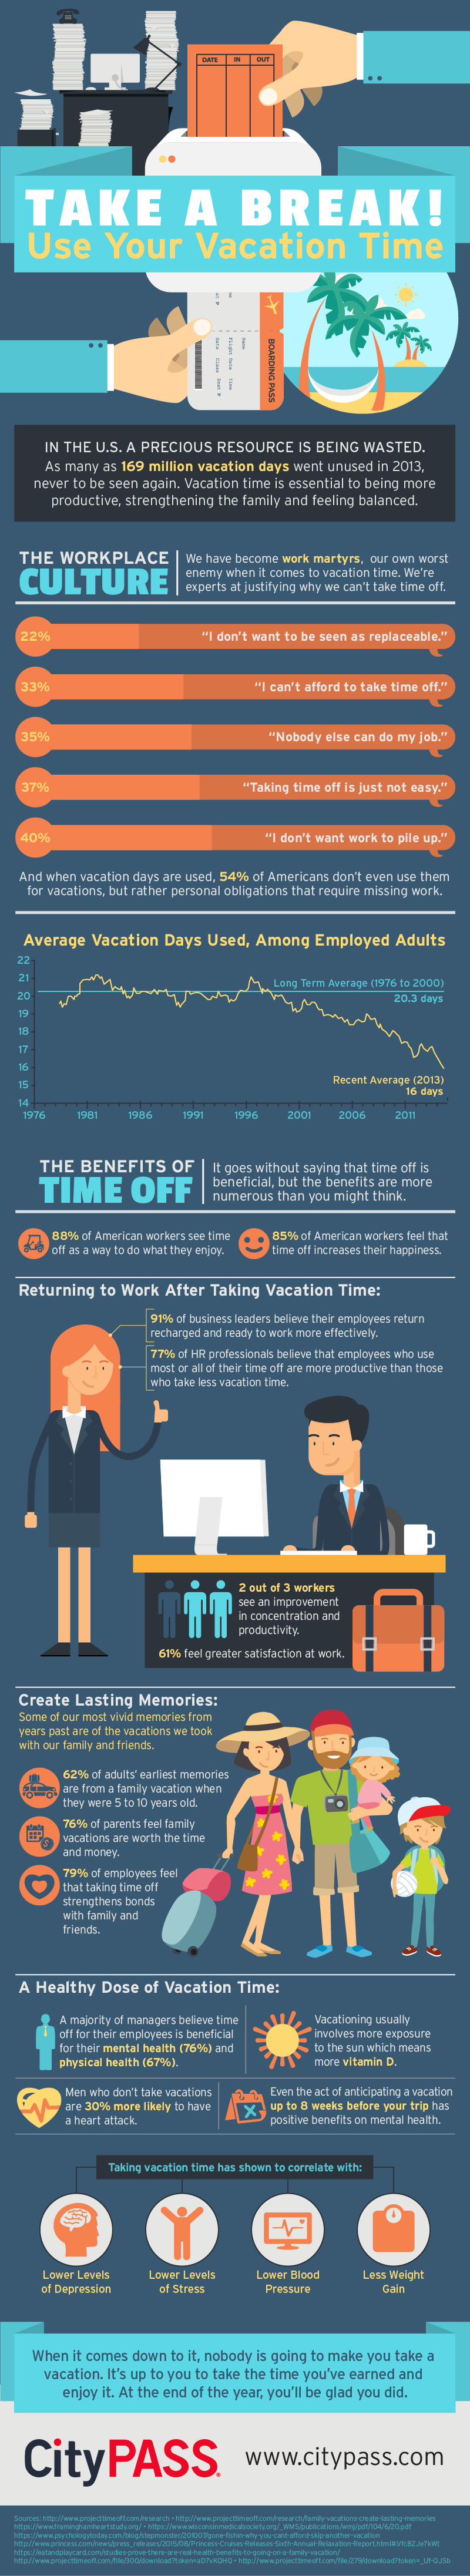 use-vacation-time-infographic.png